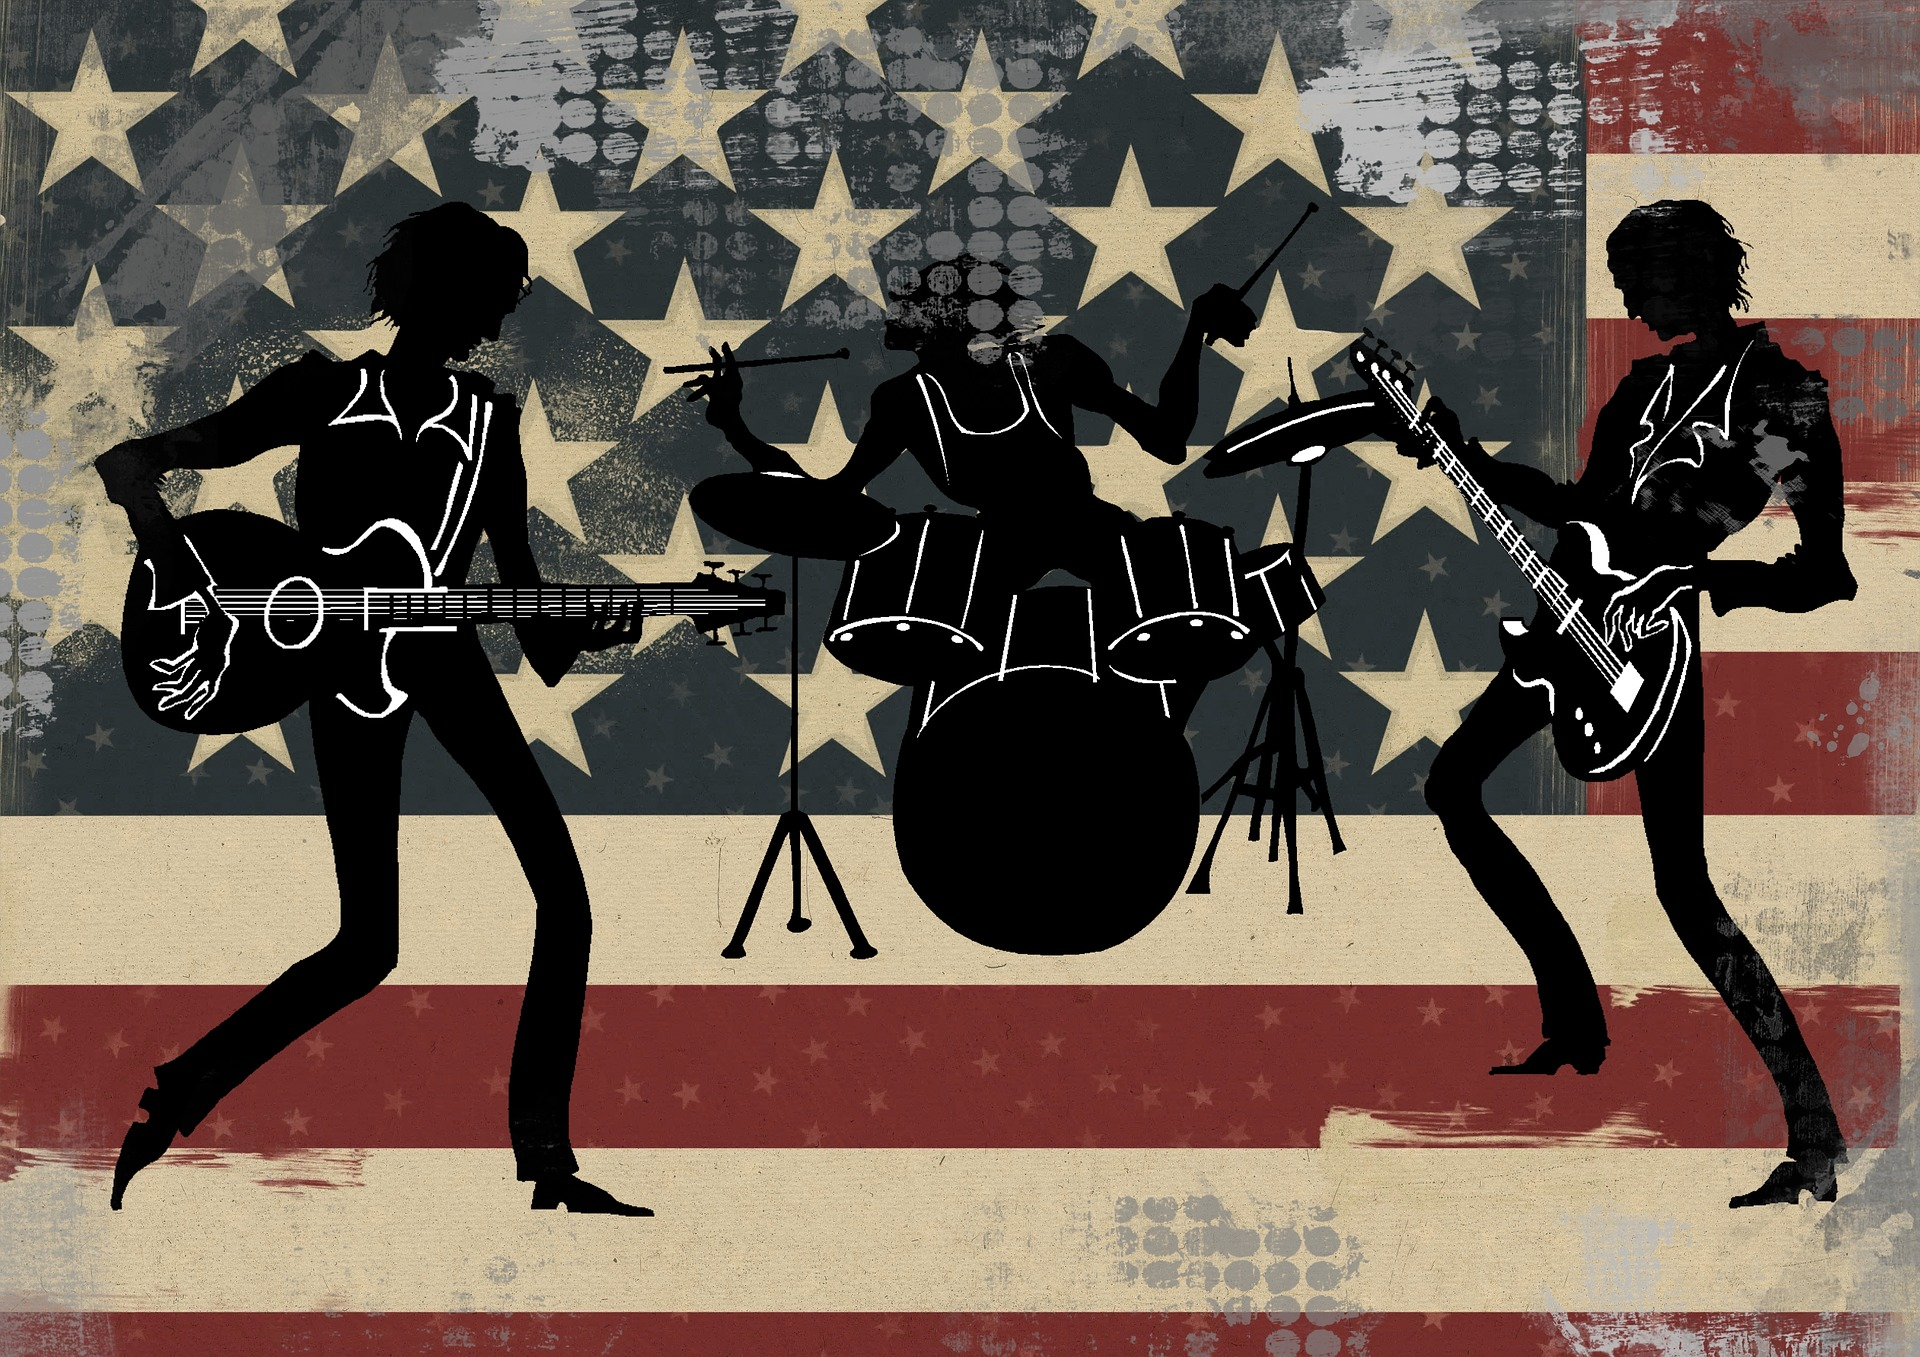 American Band image by ArtsyBee at Pixabay